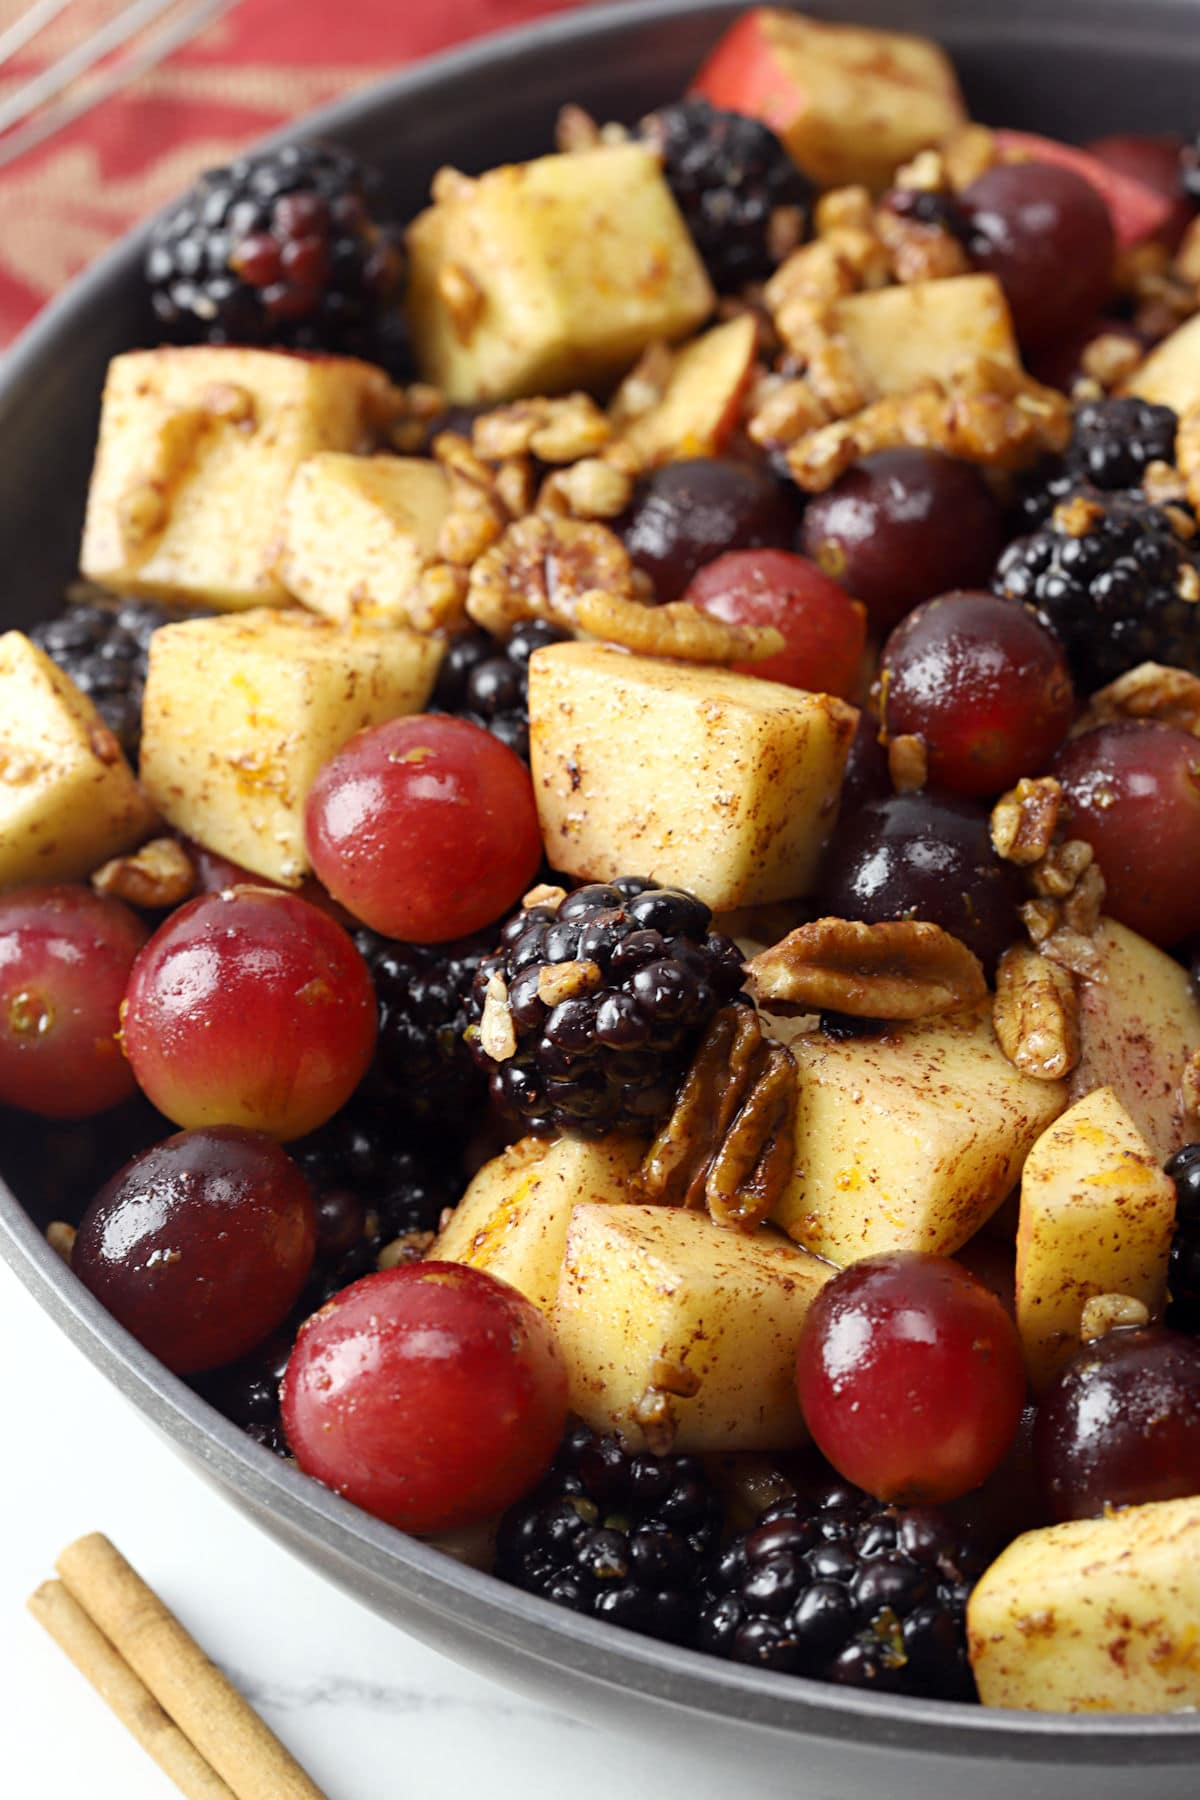 Close up of grapes, cubed apple, and blackberries coated in a cinnamon dressing in a bowl.